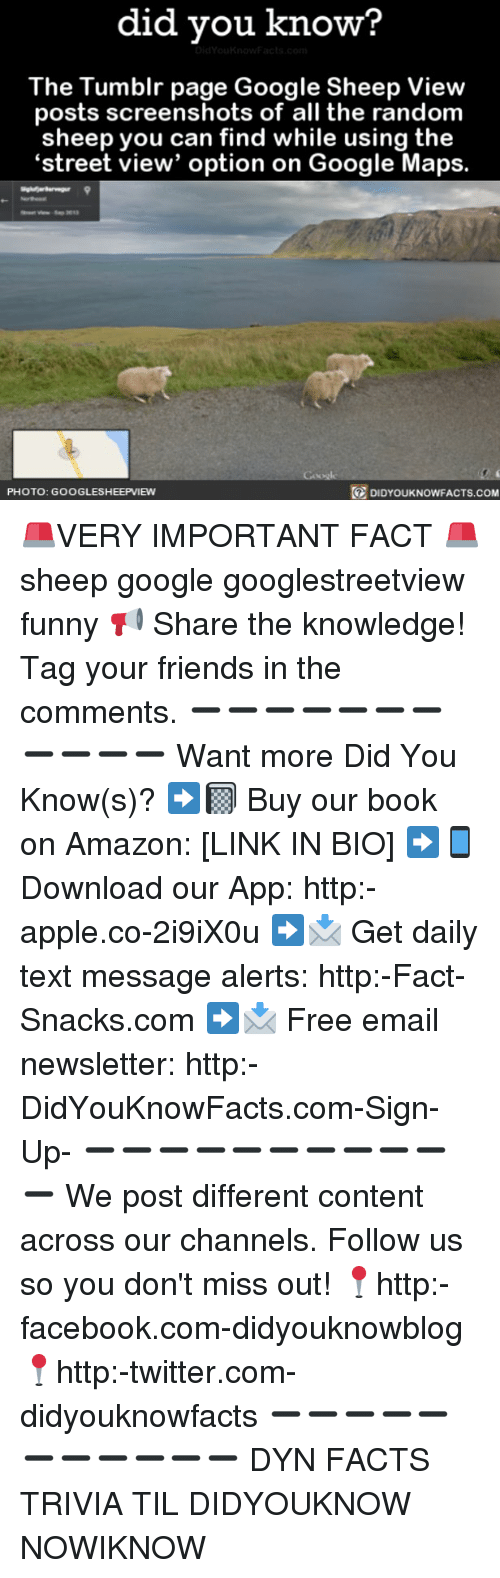 Amazon, Apple, and Facebook: did you know?  The Tumblr page Google Sheep View  posts screenshots of all the random  sheep you can find while using the  'street view' option on Google Maps.  PHOTO: GOOGLESHEEPVIEWN  DIDYOUKNOWFACTS.COM 🚨VERY IMPORTANT FACT 🚨 sheep google googlestreetview funny 📢 Share the knowledge! Tag your friends in the comments. ➖➖➖➖➖➖➖➖➖➖➖ Want more Did You Know(s)? ➡📓 Buy our book on Amazon: [LINK IN BIO] ➡📱 Download our App: http:-apple.co-2i9iX0u ➡📩 Get daily text message alerts: http:-Fact-Snacks.com ➡📩 Free email newsletter: http:-DidYouKnowFacts.com-Sign-Up- ➖➖➖➖➖➖➖➖➖➖➖ We post different content across our channels. Follow us so you don't miss out! 📍http:-facebook.com-didyouknowblog 📍http:-twitter.com-didyouknowfacts ➖➖➖➖➖➖➖➖➖➖➖ DYN FACTS TRIVIA TIL DIDYOUKNOW NOWIKNOW